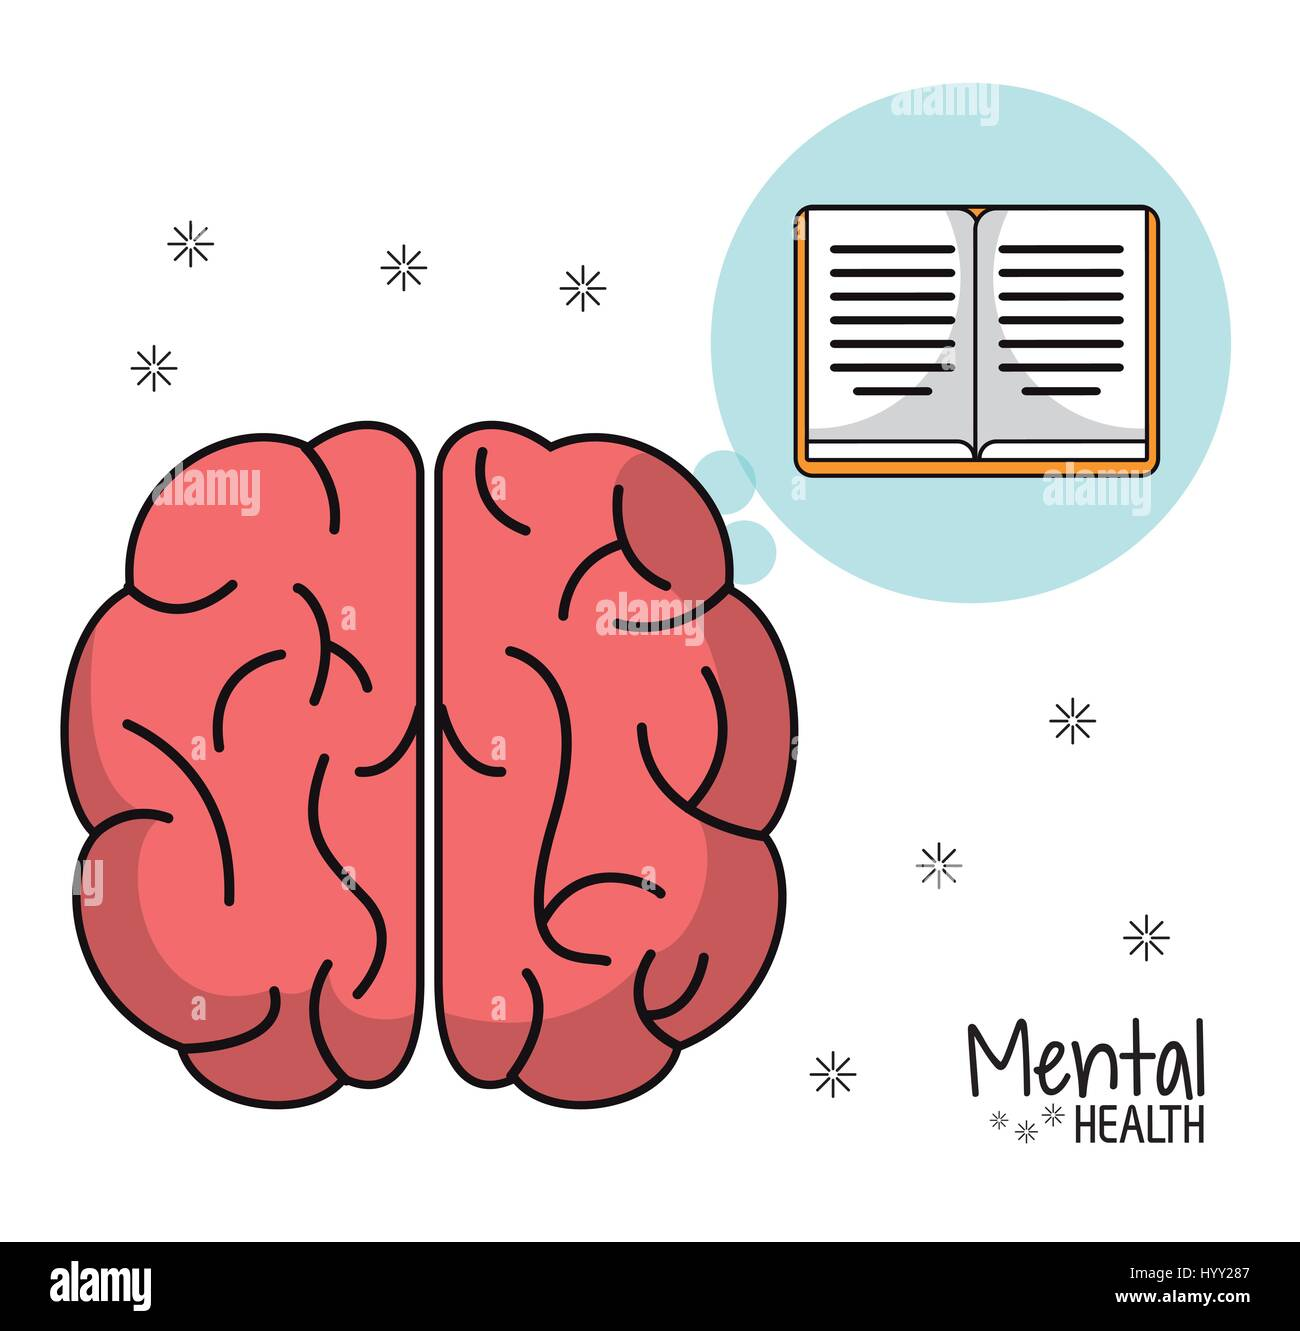 mental health brain book learn design - Stock Image